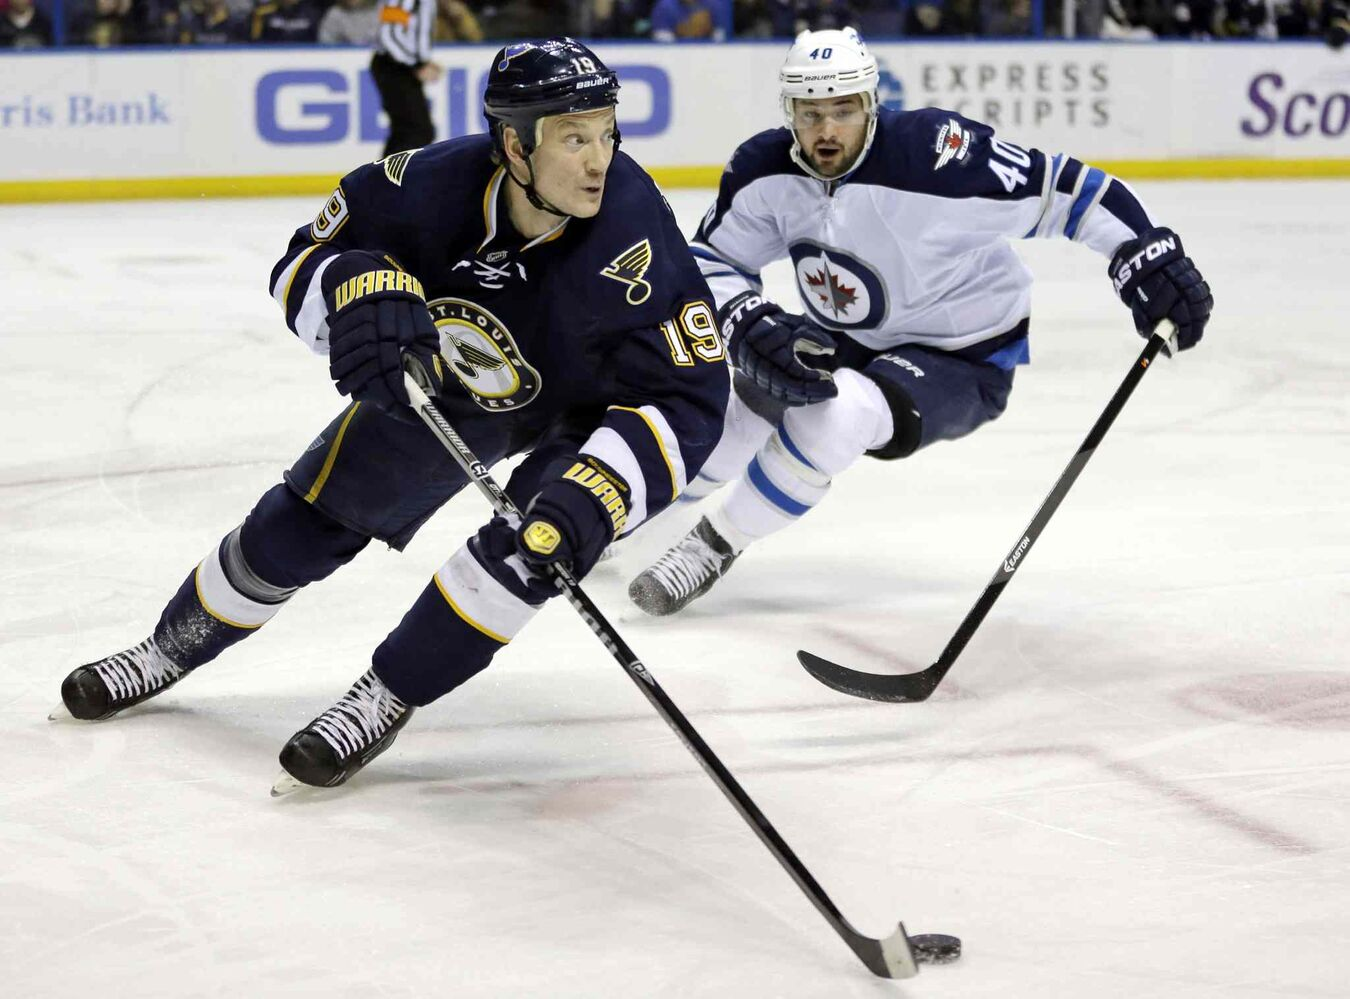 St. Louis Blues' Jay Bouwmeester, left, controls the puck as Winnipeg Jets' Devin Setoguchi gives chase during the first period of Saturday's game. (Jeff Roberson / The Associated Press)